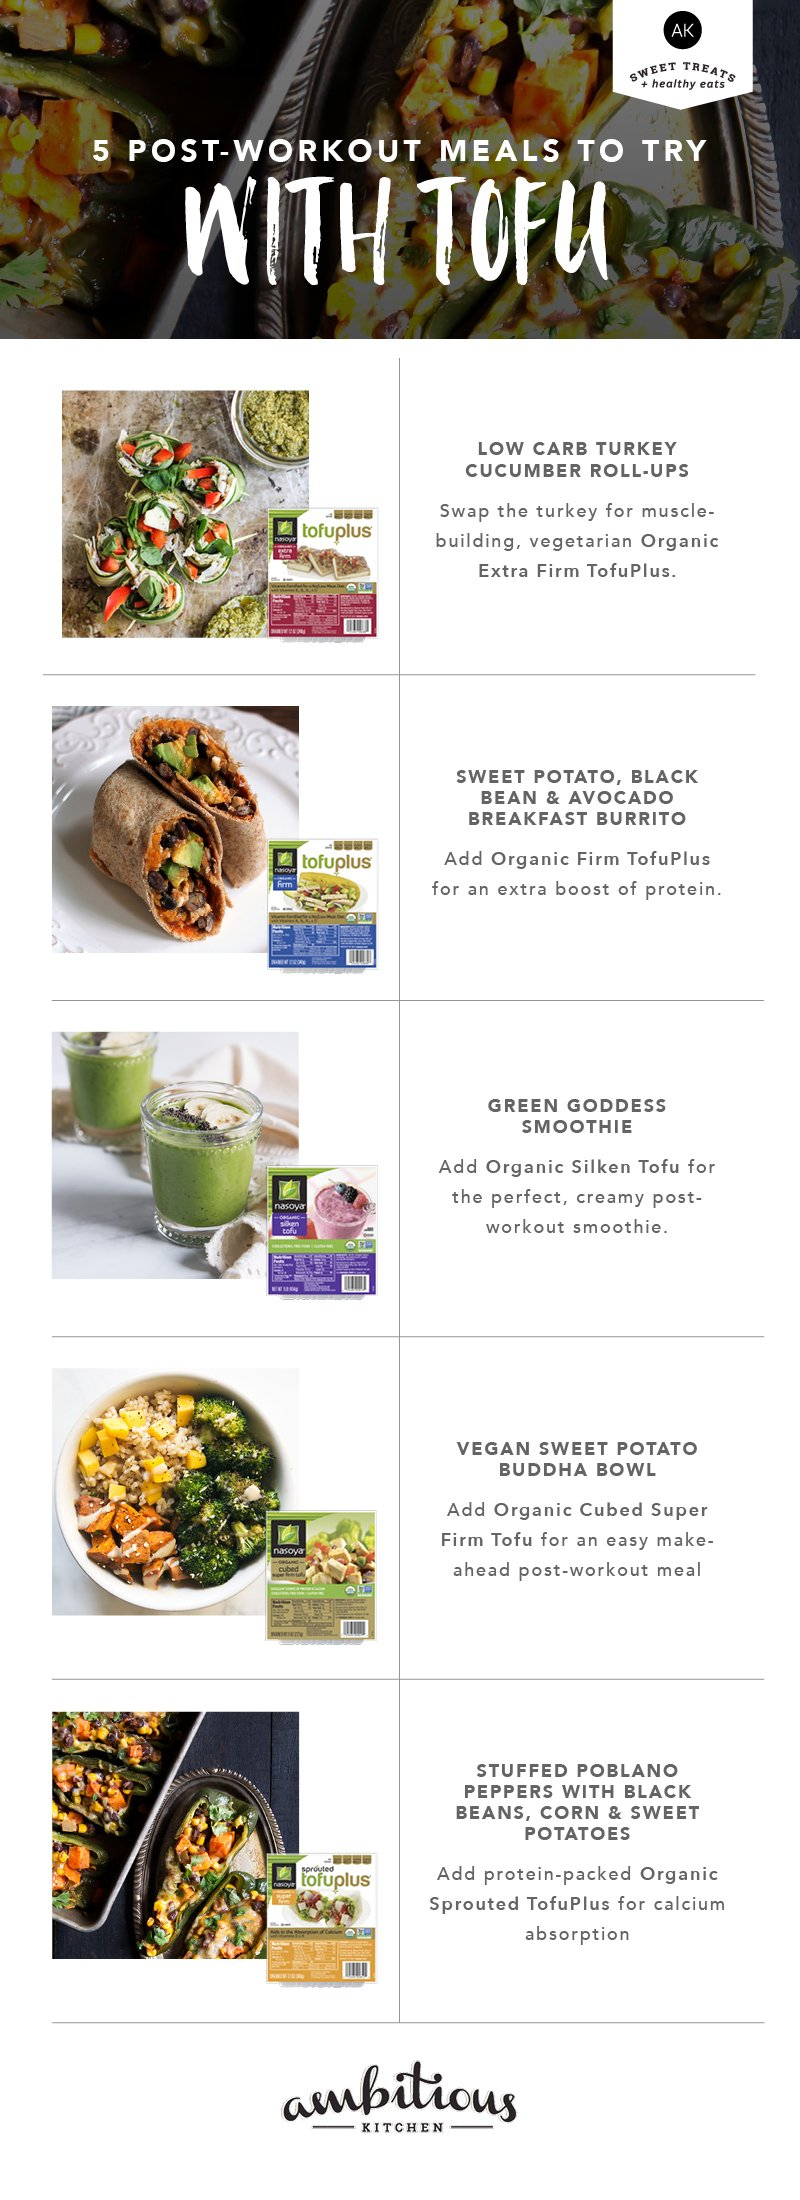 5 Post-Workout Recipes to Try with Tofu graphic